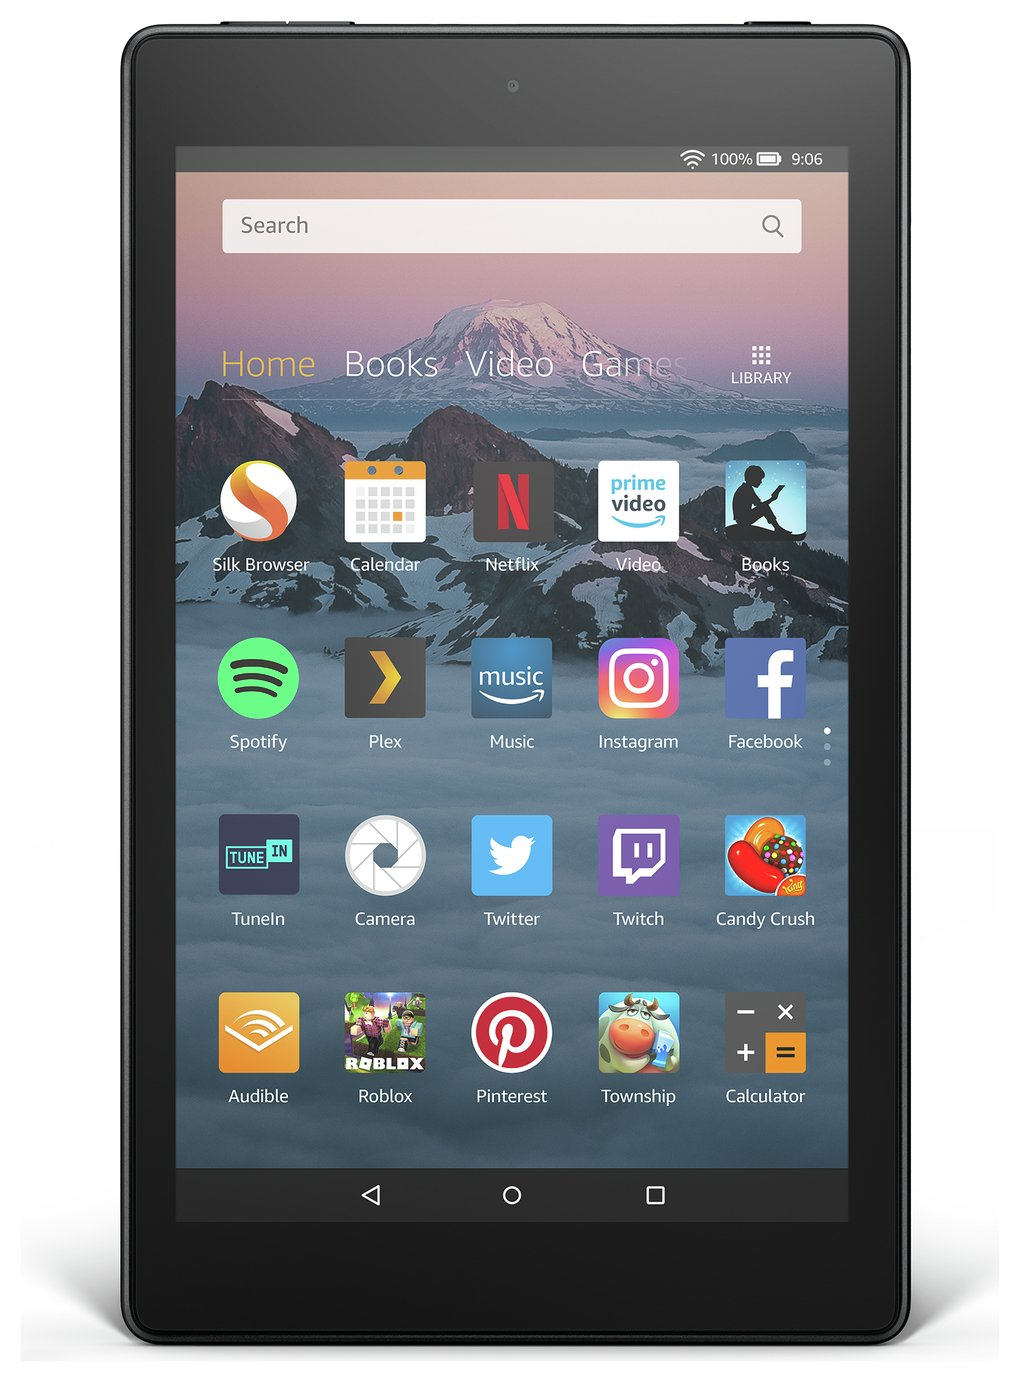 Amazon Fire HD 8 Alexa 8 Inch 32GB Tablet - Black from Amazon